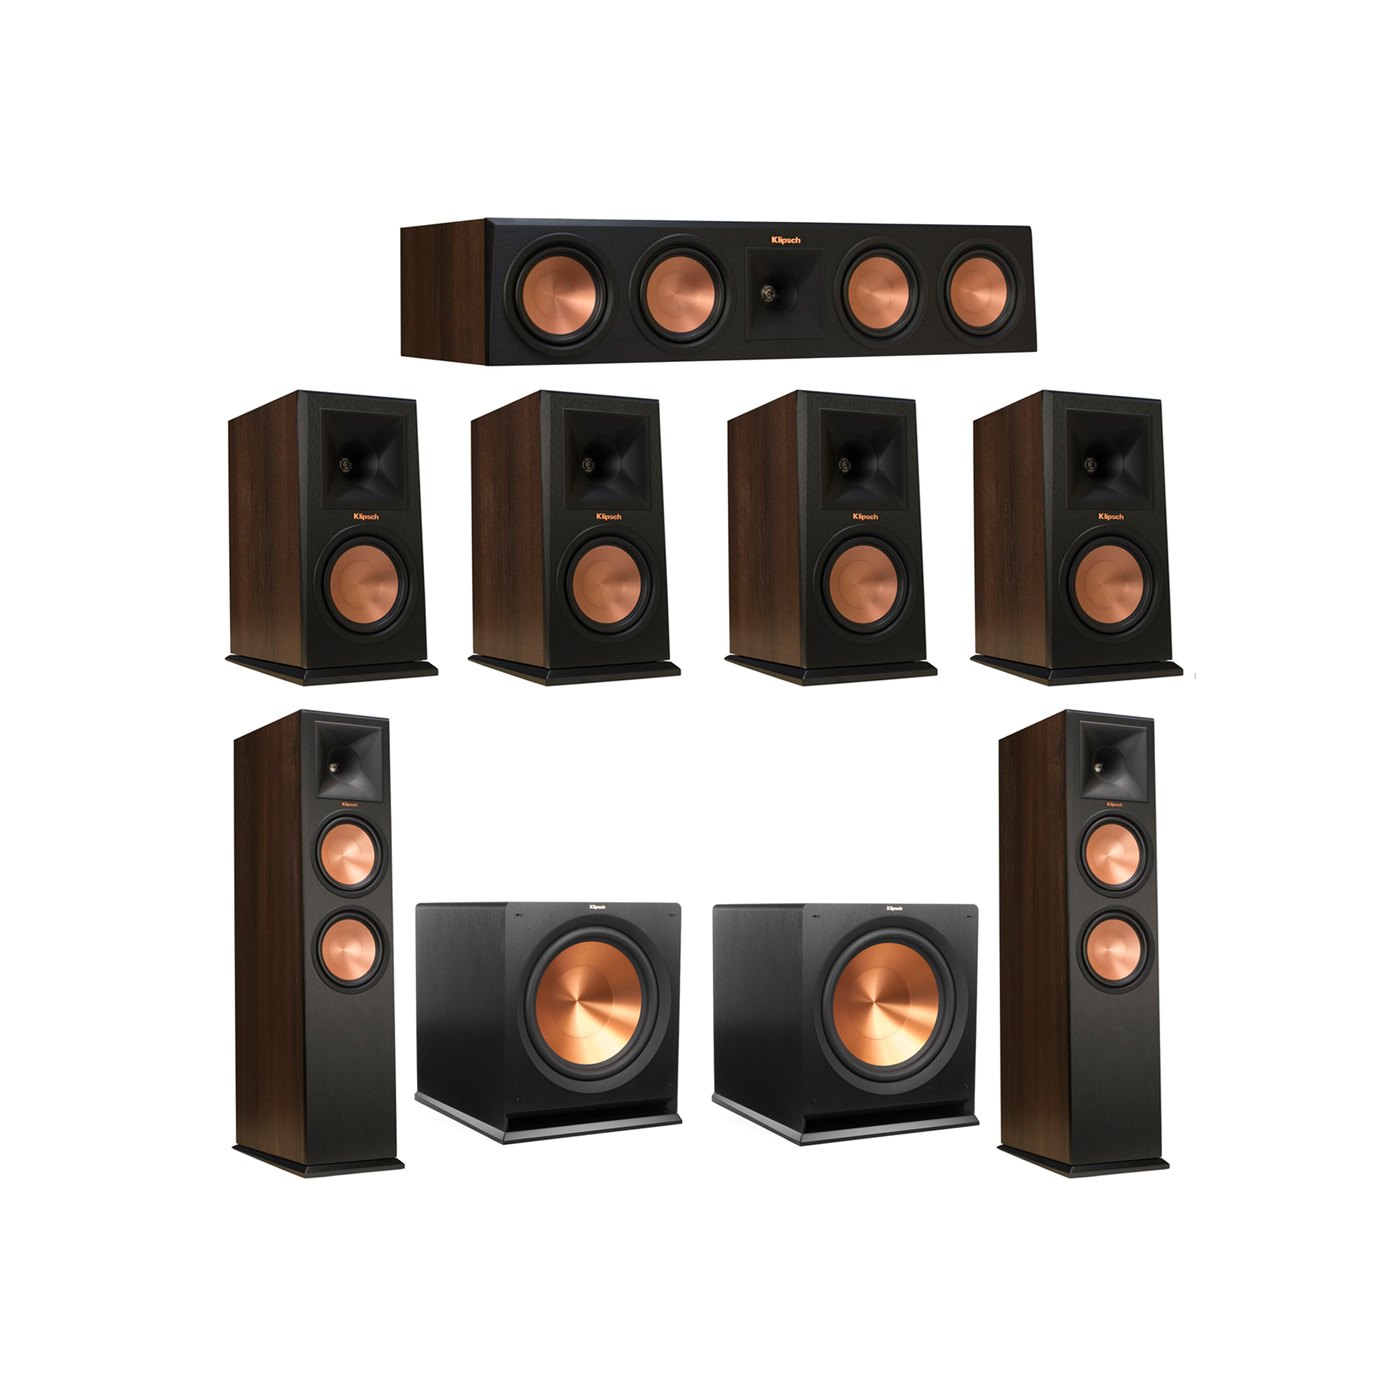 Klipsch 7.2 Walnut System with 2 RP-280F Tower Speakers, 1 RP-450C Center Speaker, 4 Klipsch RP-160M Bookshelf Speakers, 2 Klipsch R-115SW Subwoofer